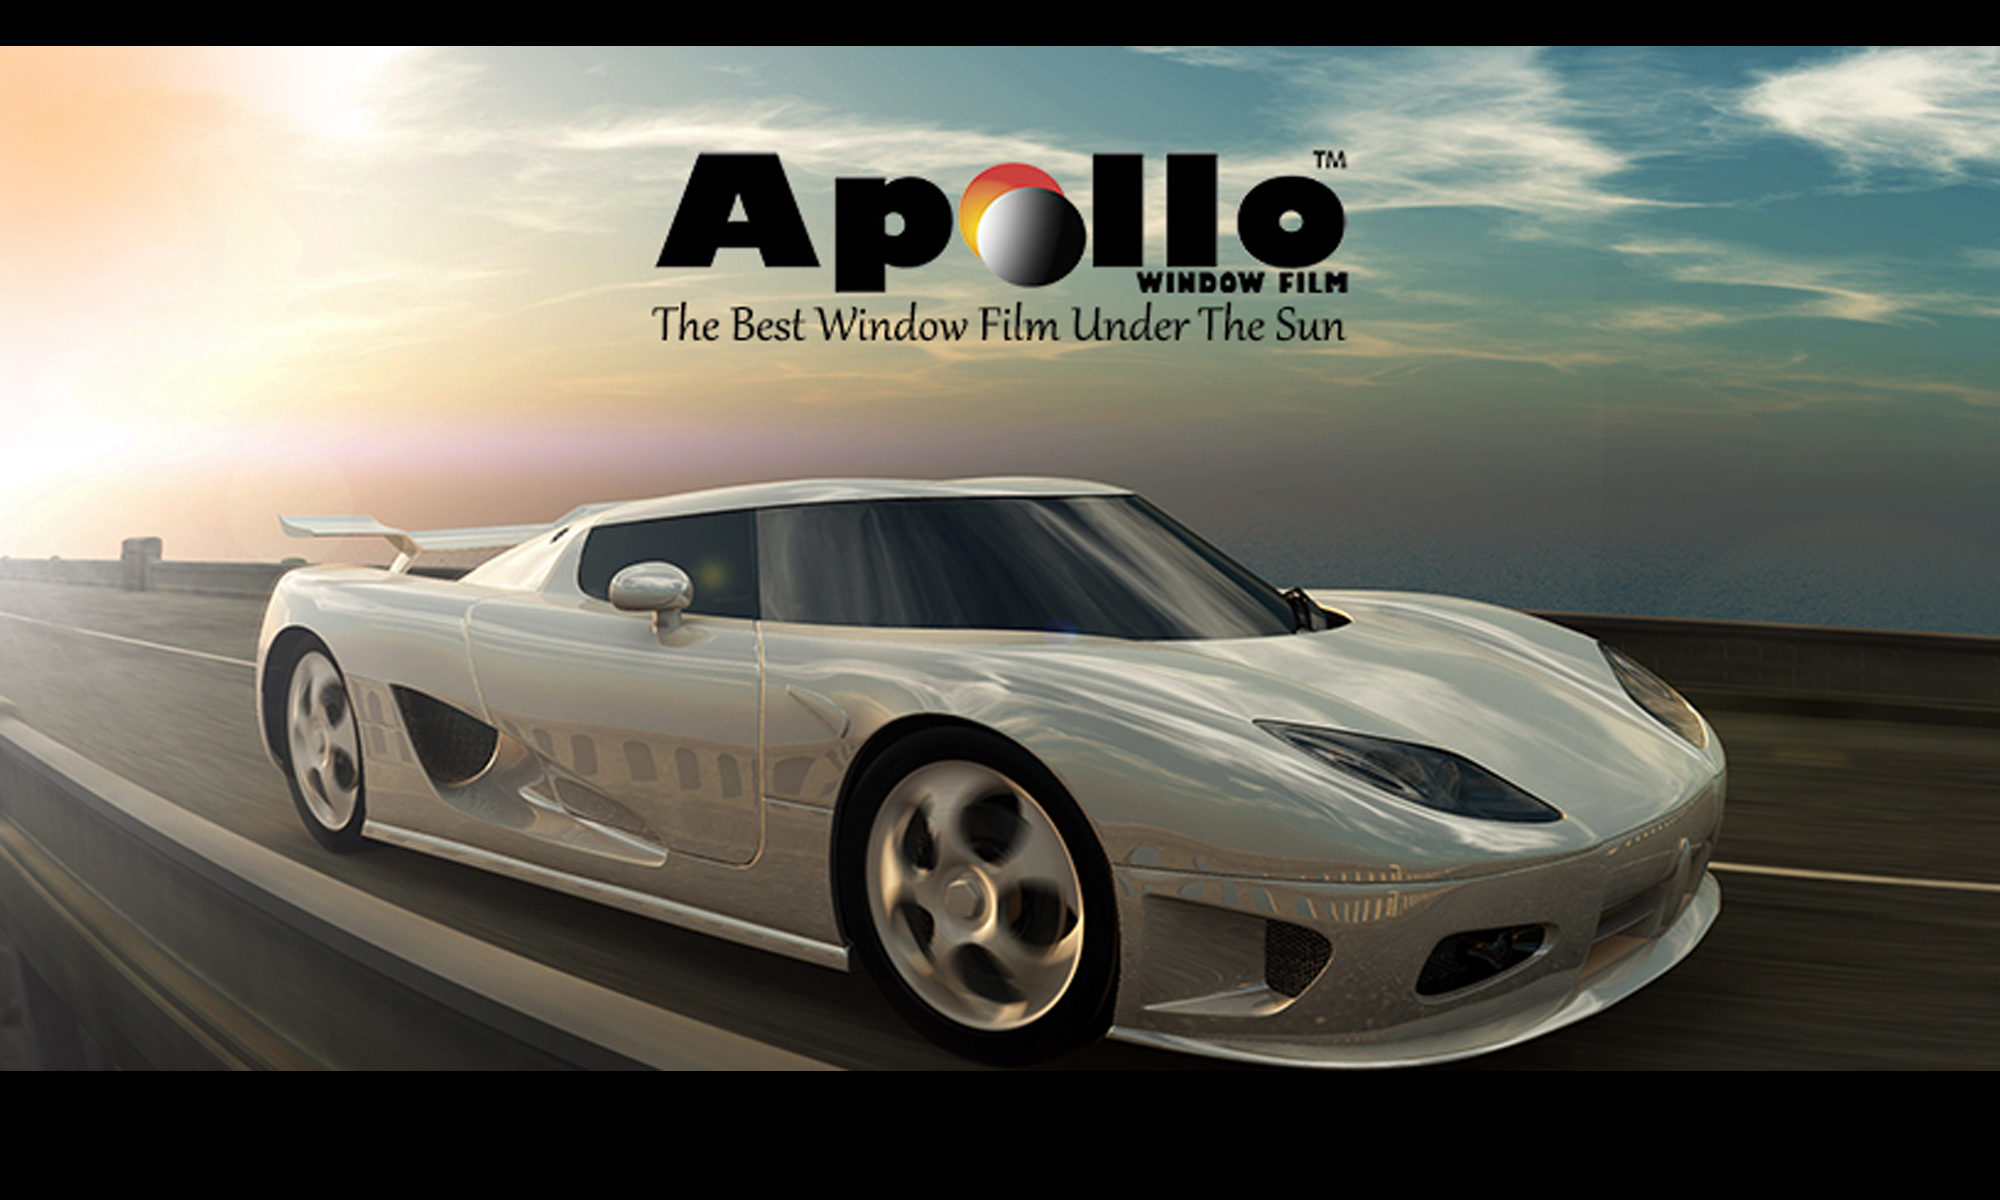 Apollo Window Film